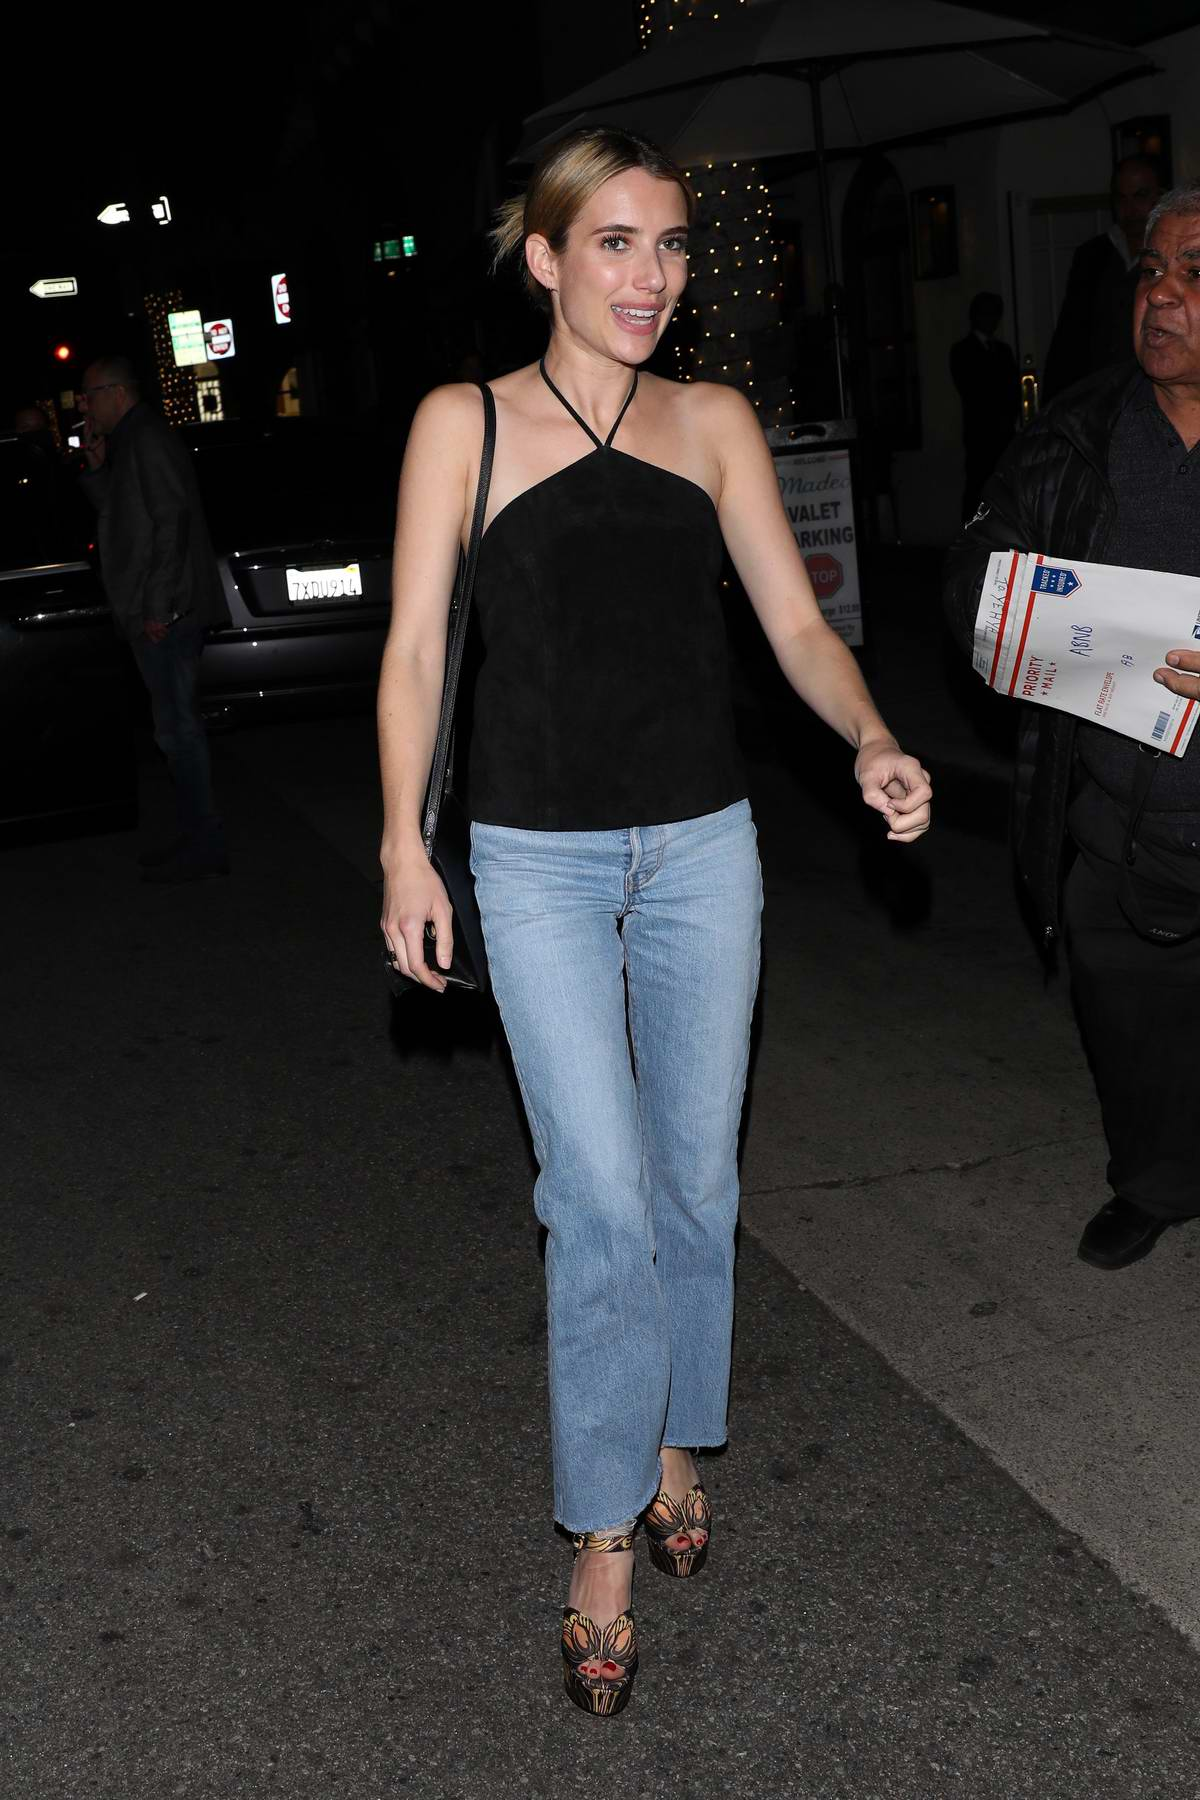 Emma Roberts seen wearing a black top and jeans while out for dinner at Madeo in Beverly Hills, California